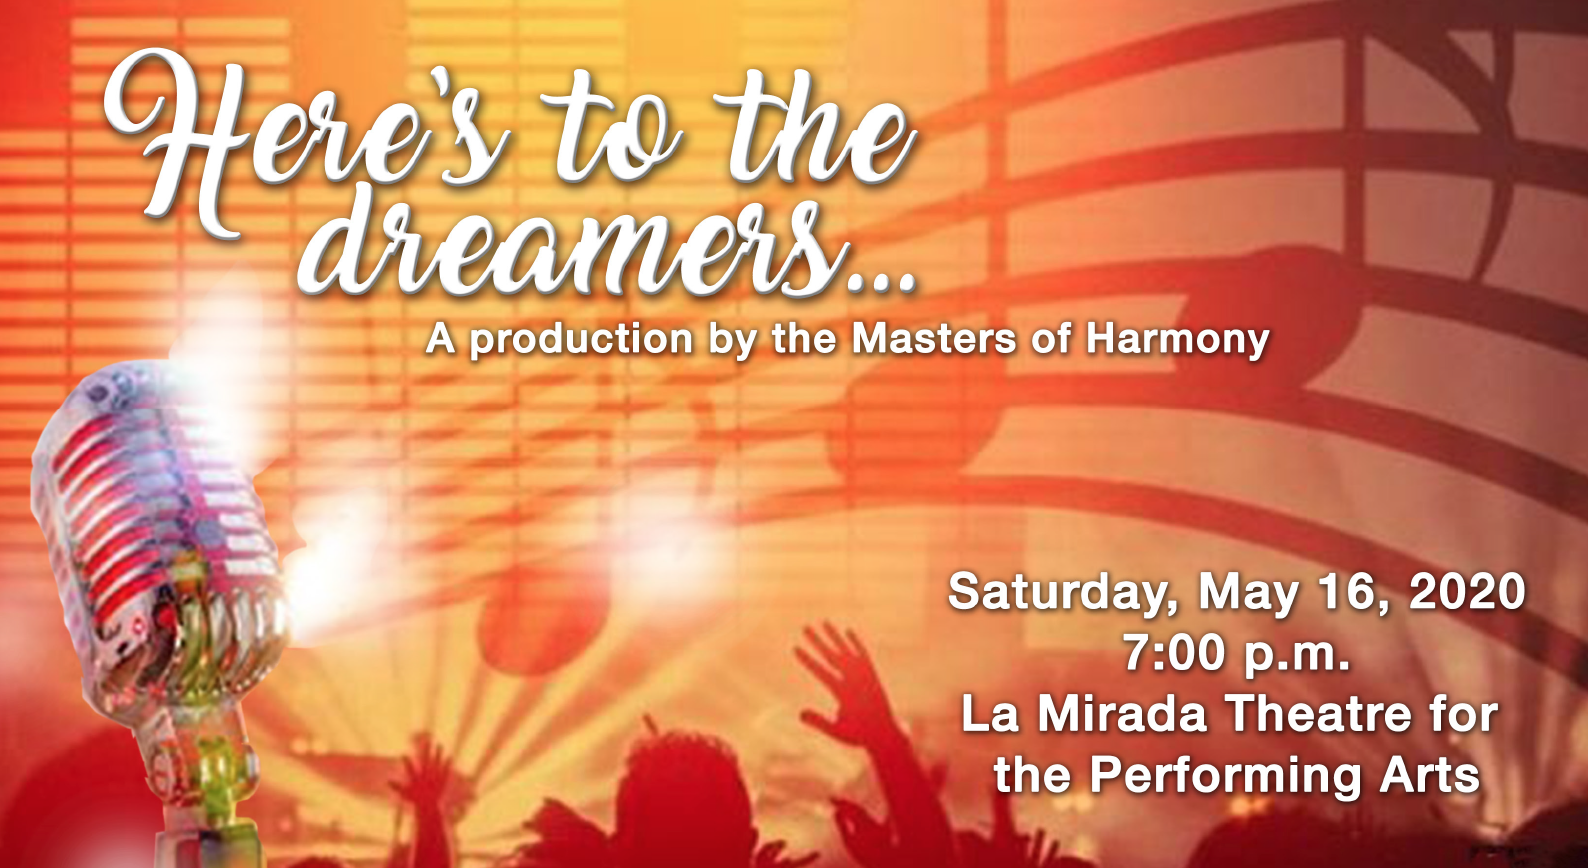 Masters Of Harmony Christmas Show 2020 Here's to the Dreamers   Masters of Harmony   La Mirada Theatre